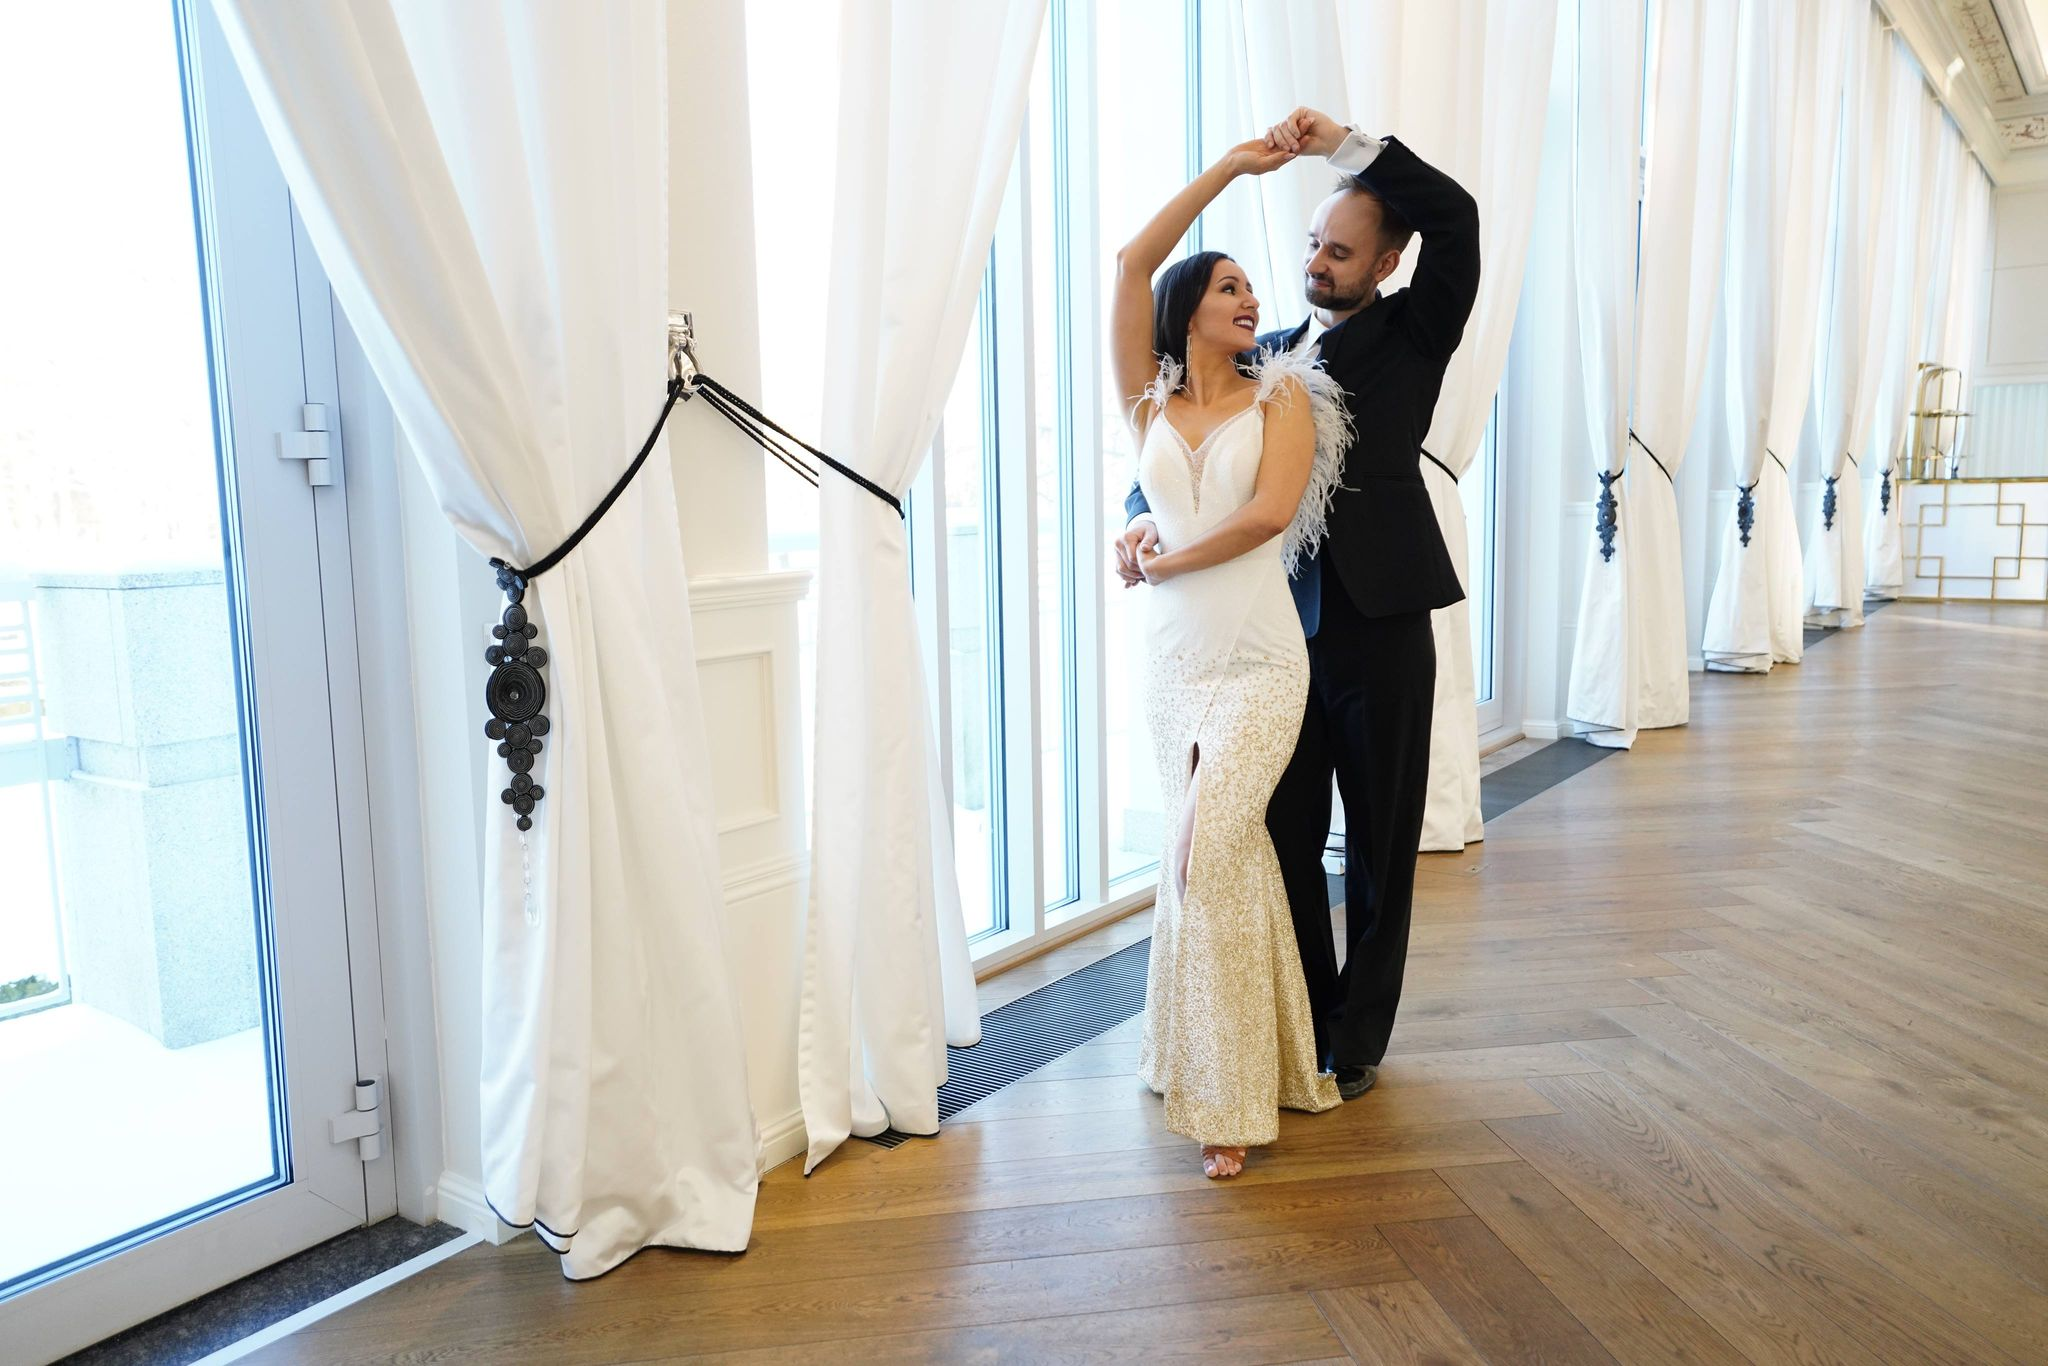 The 10 Best Wedding Dance Songs - First Dance Choreography